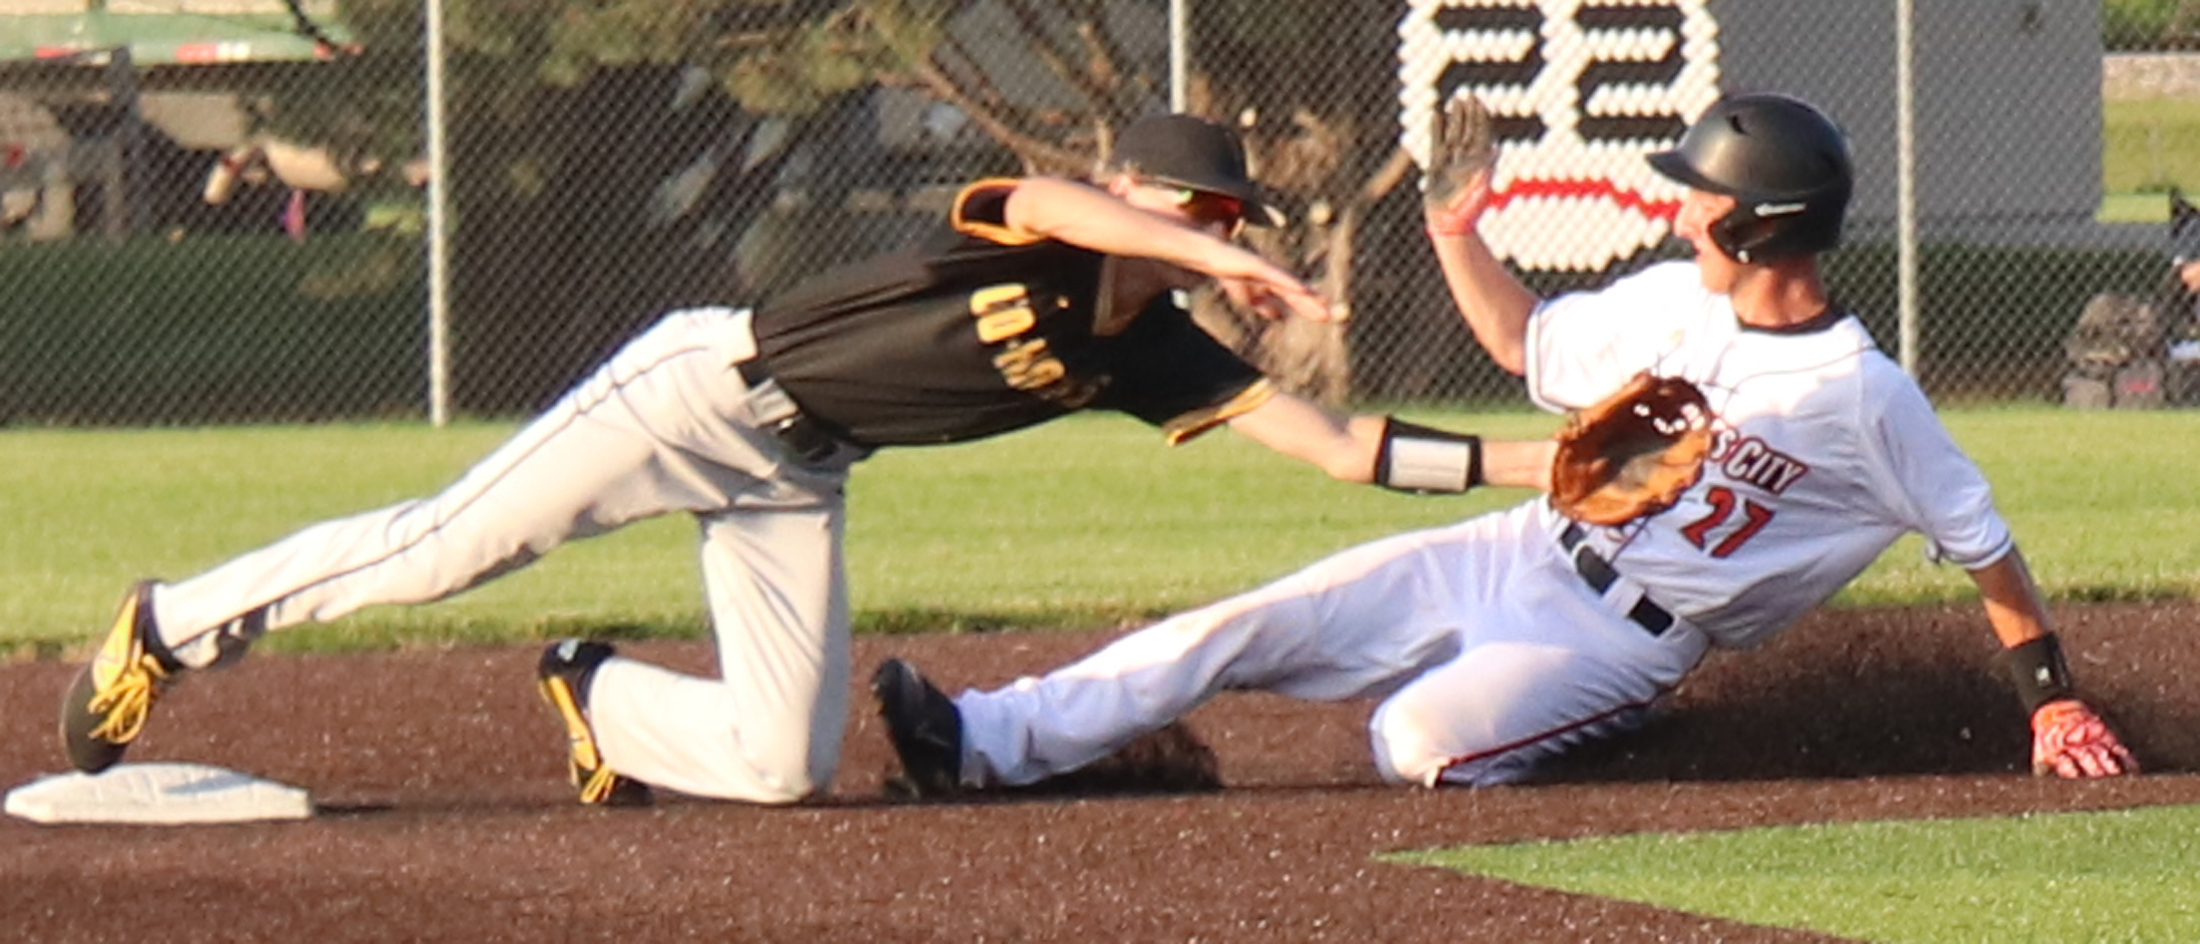 Comet come up 1 run short in chasing down Go-Hawks